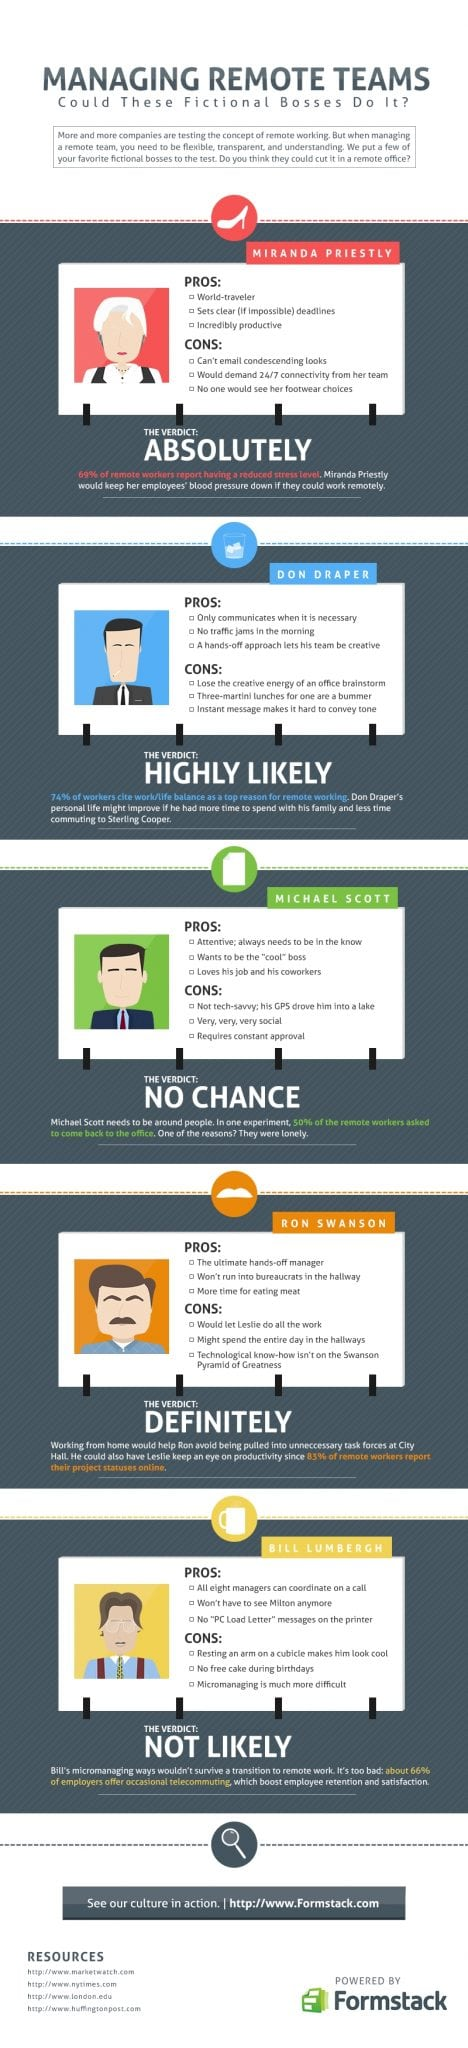 Photo of Managing Remote Teams [INFOGRAPHIC]